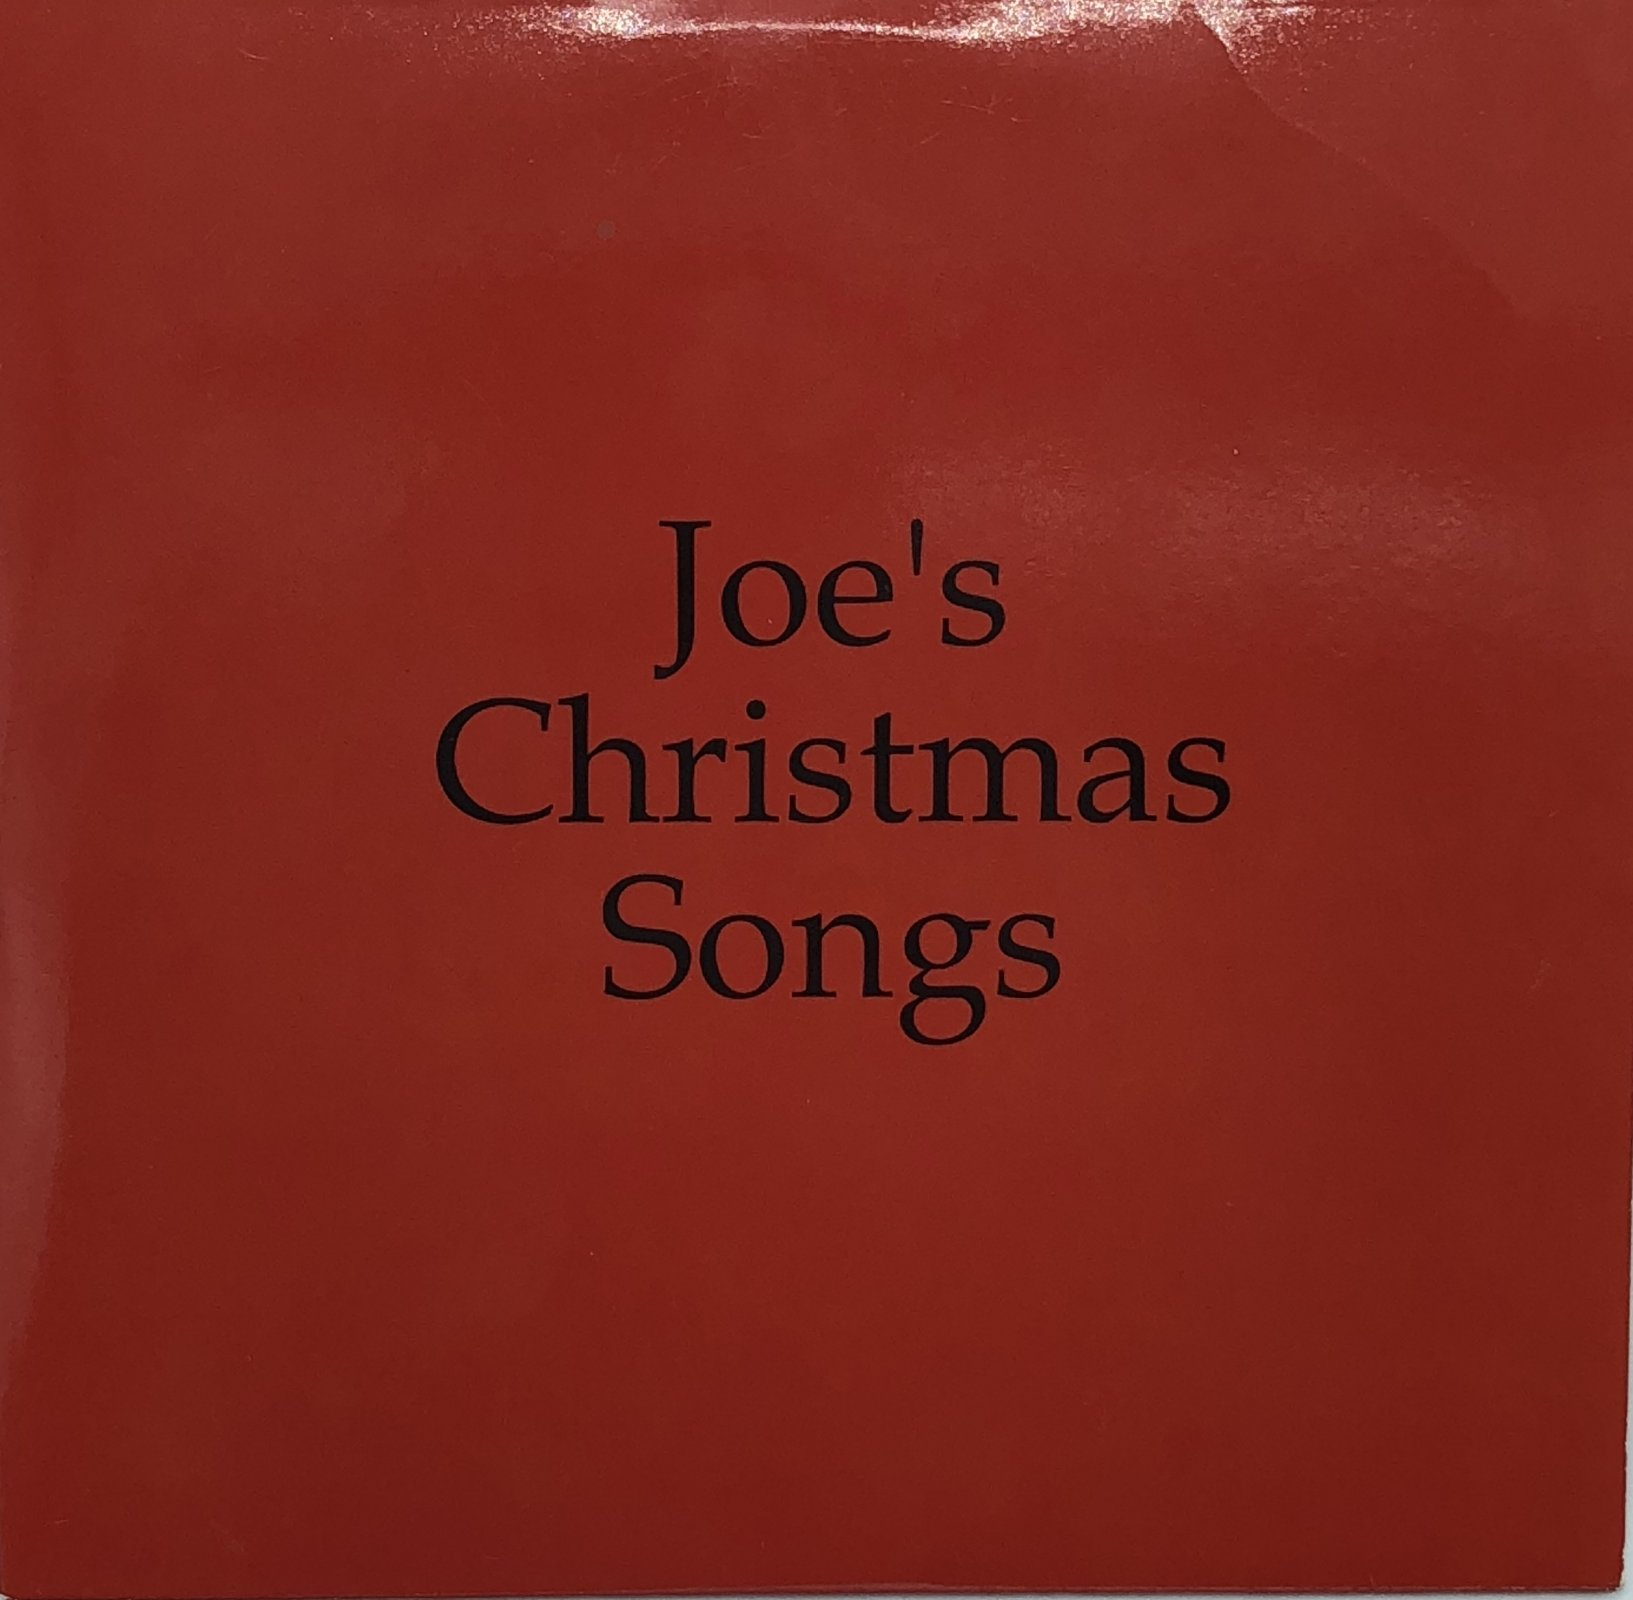 Joe's Christmas Songs